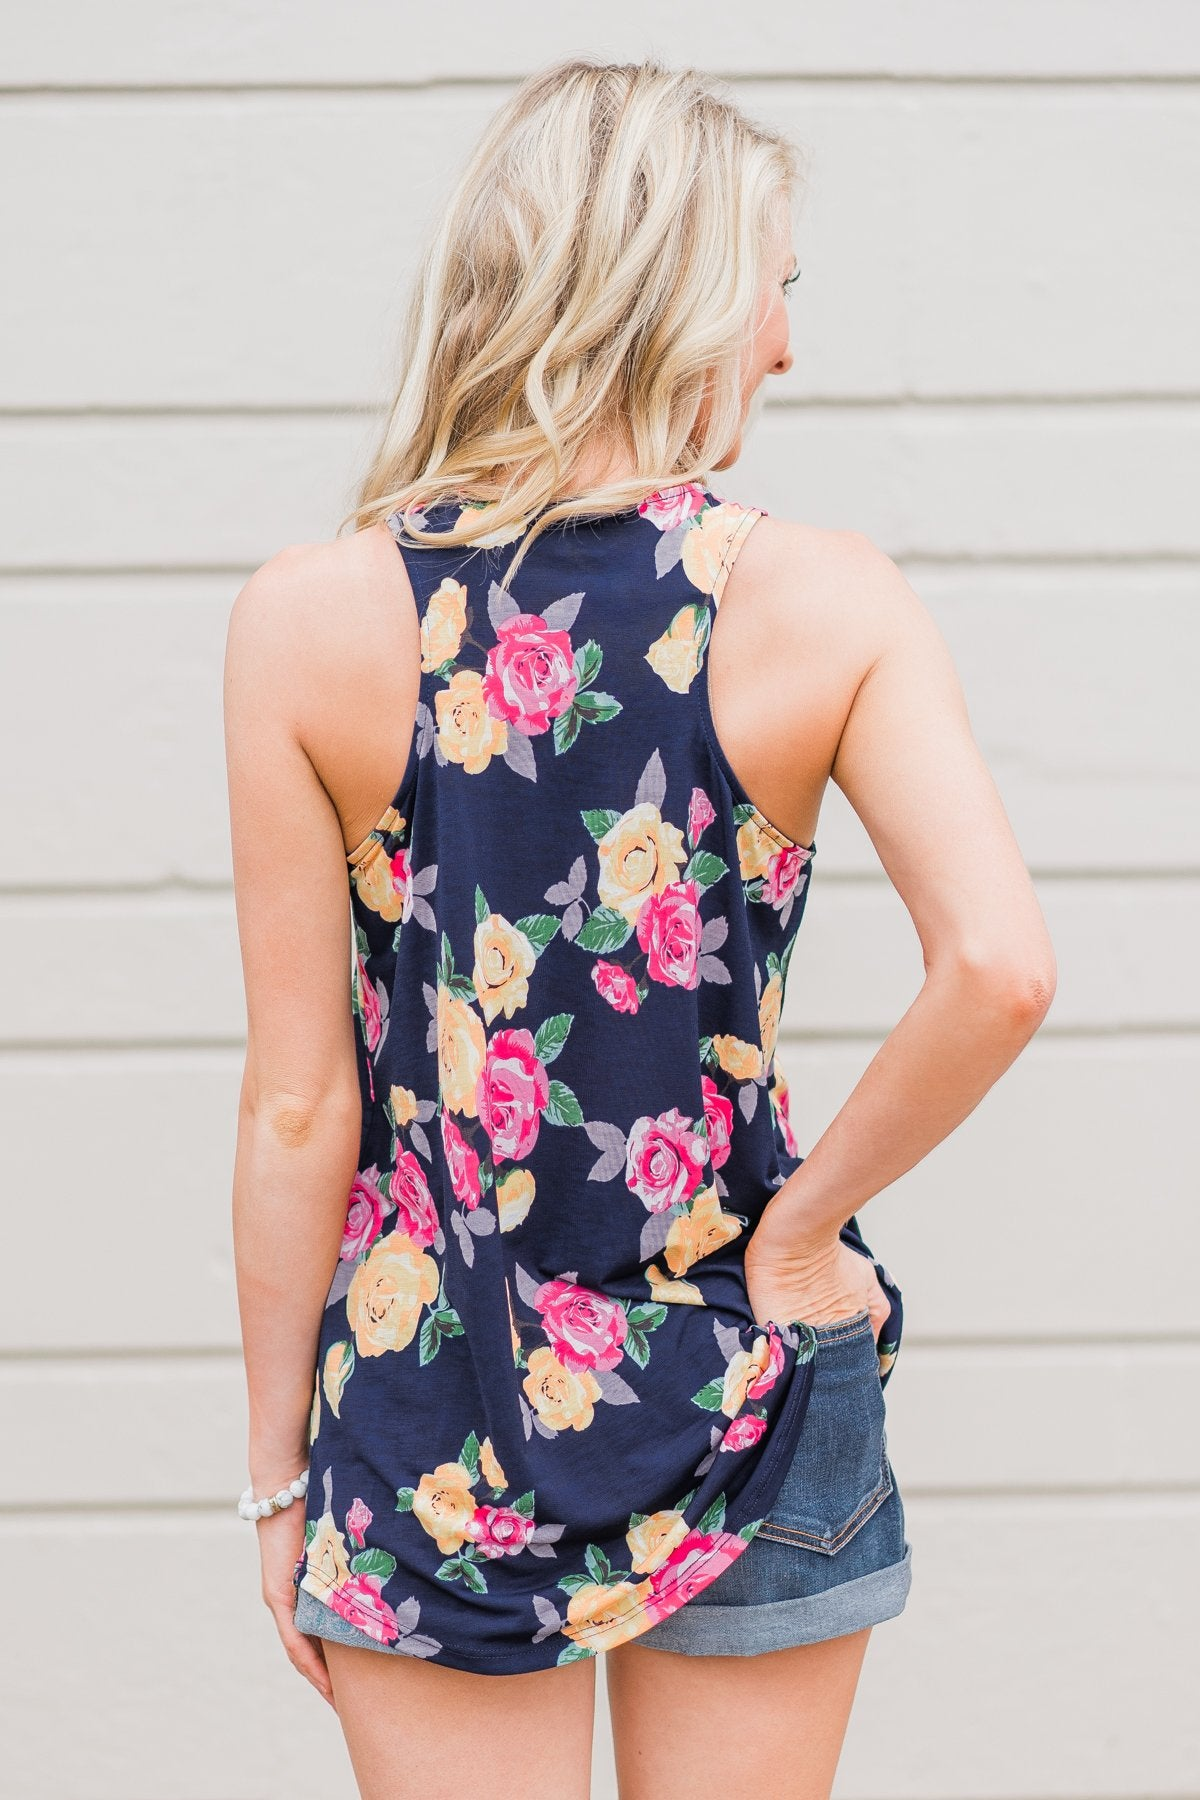 Beautiful Blossoms Criss Cross Tank Top- Navy